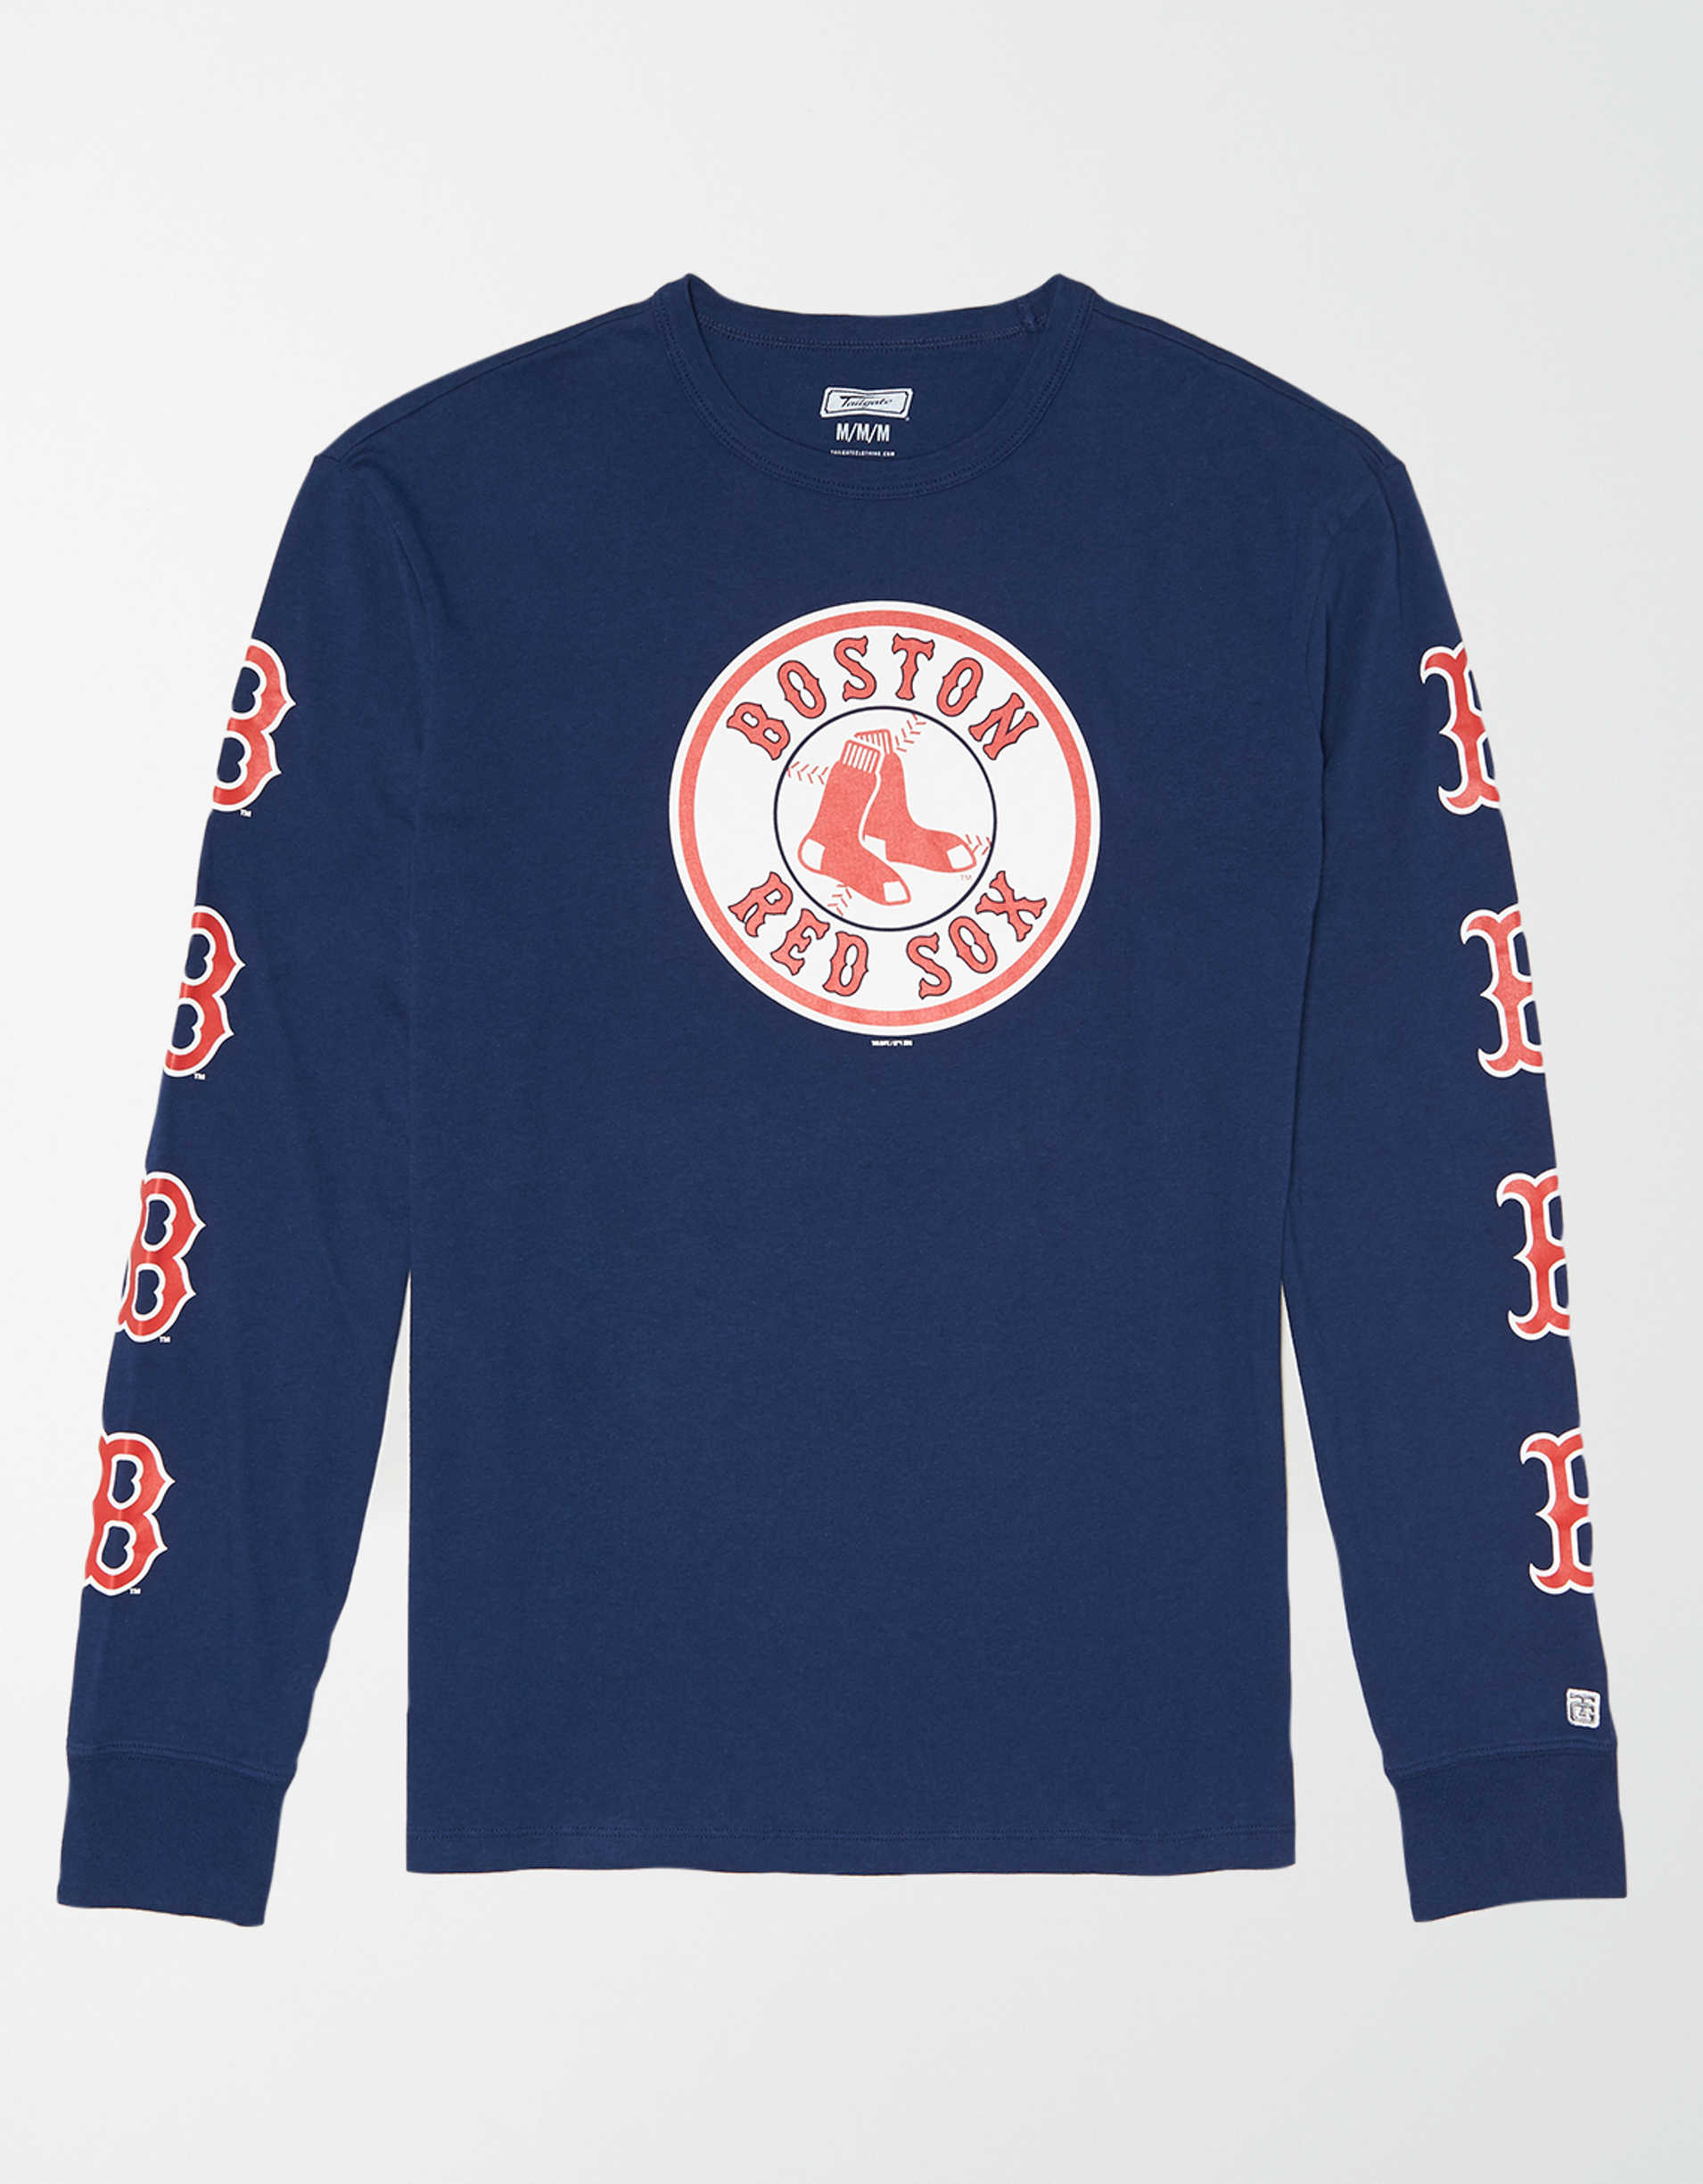 Tailgate Men's Boston Red Sox Long Sleeve Graphic T-Shirt